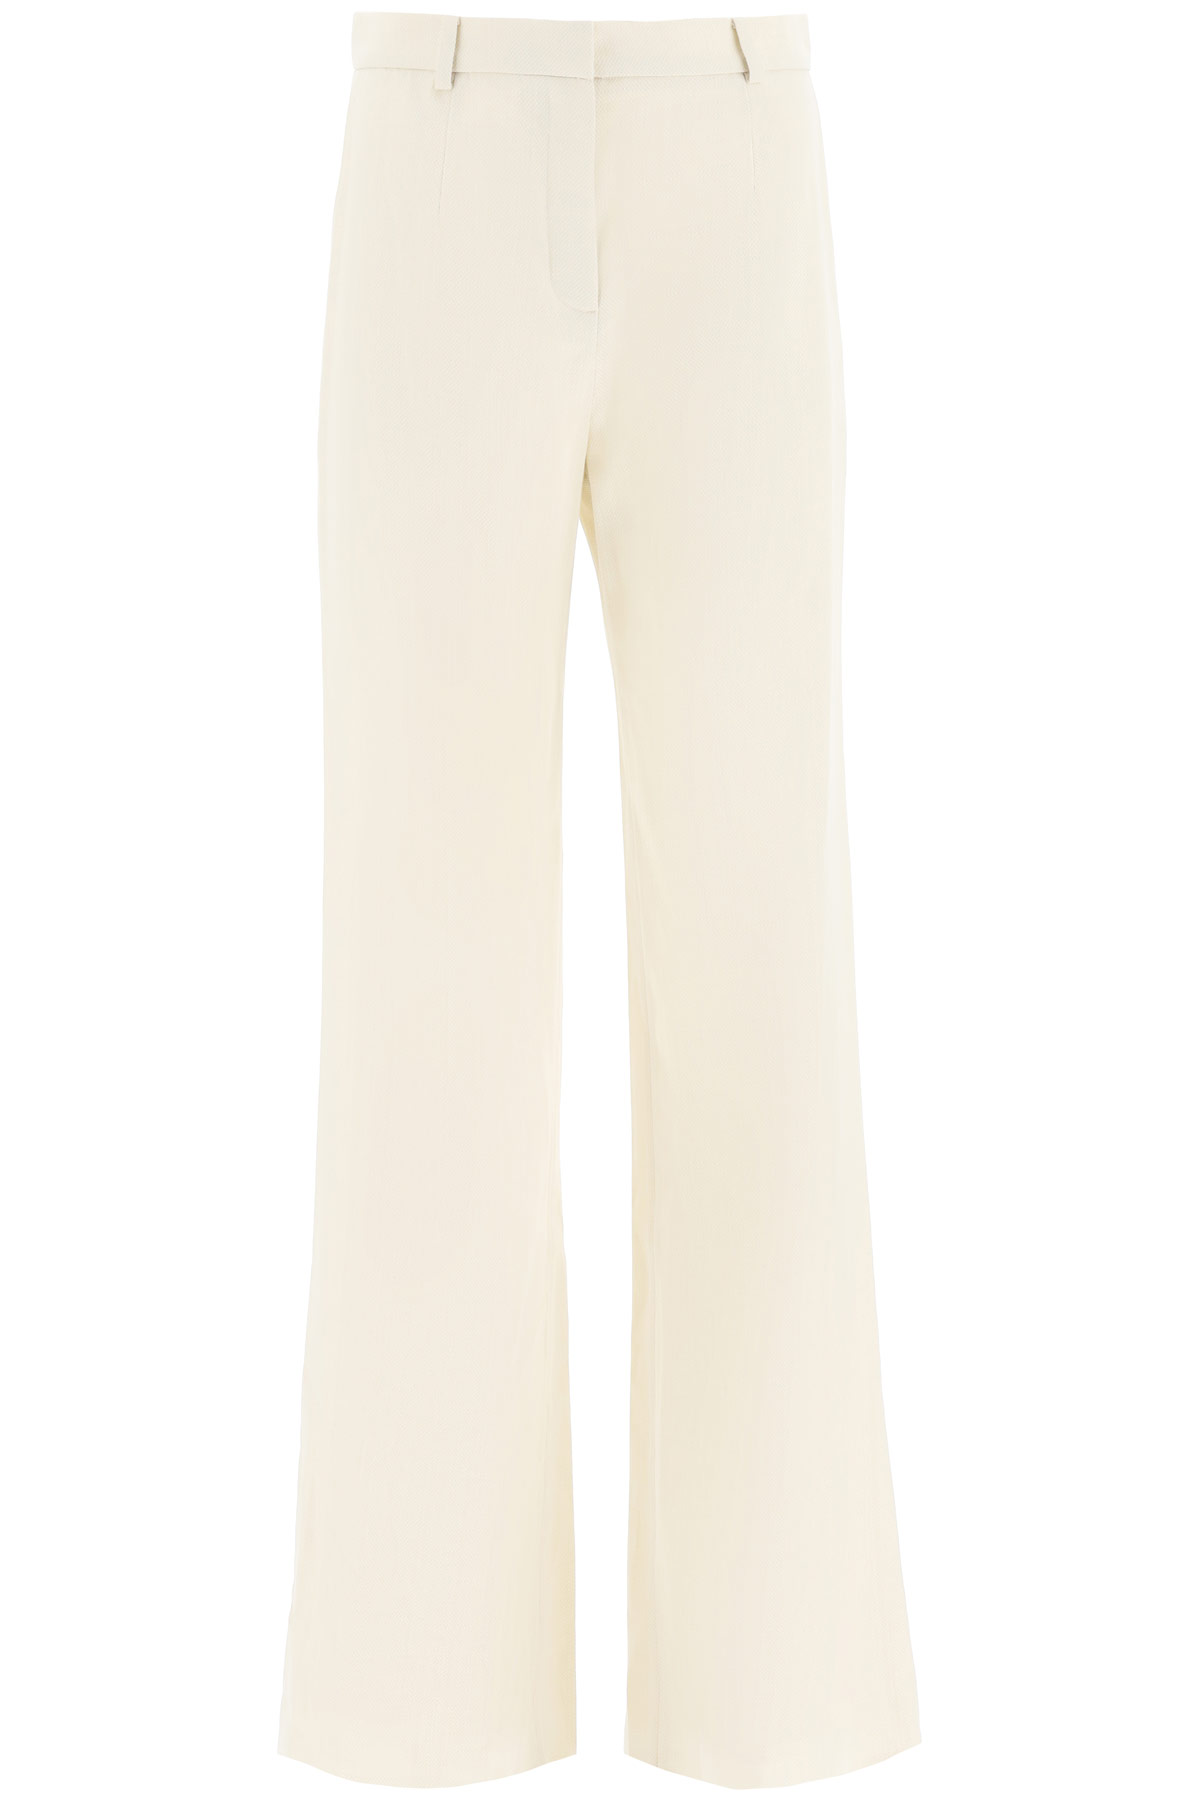 MAGDA BUTRYM SPODNIE TROUSERS 38 Green, Yellow